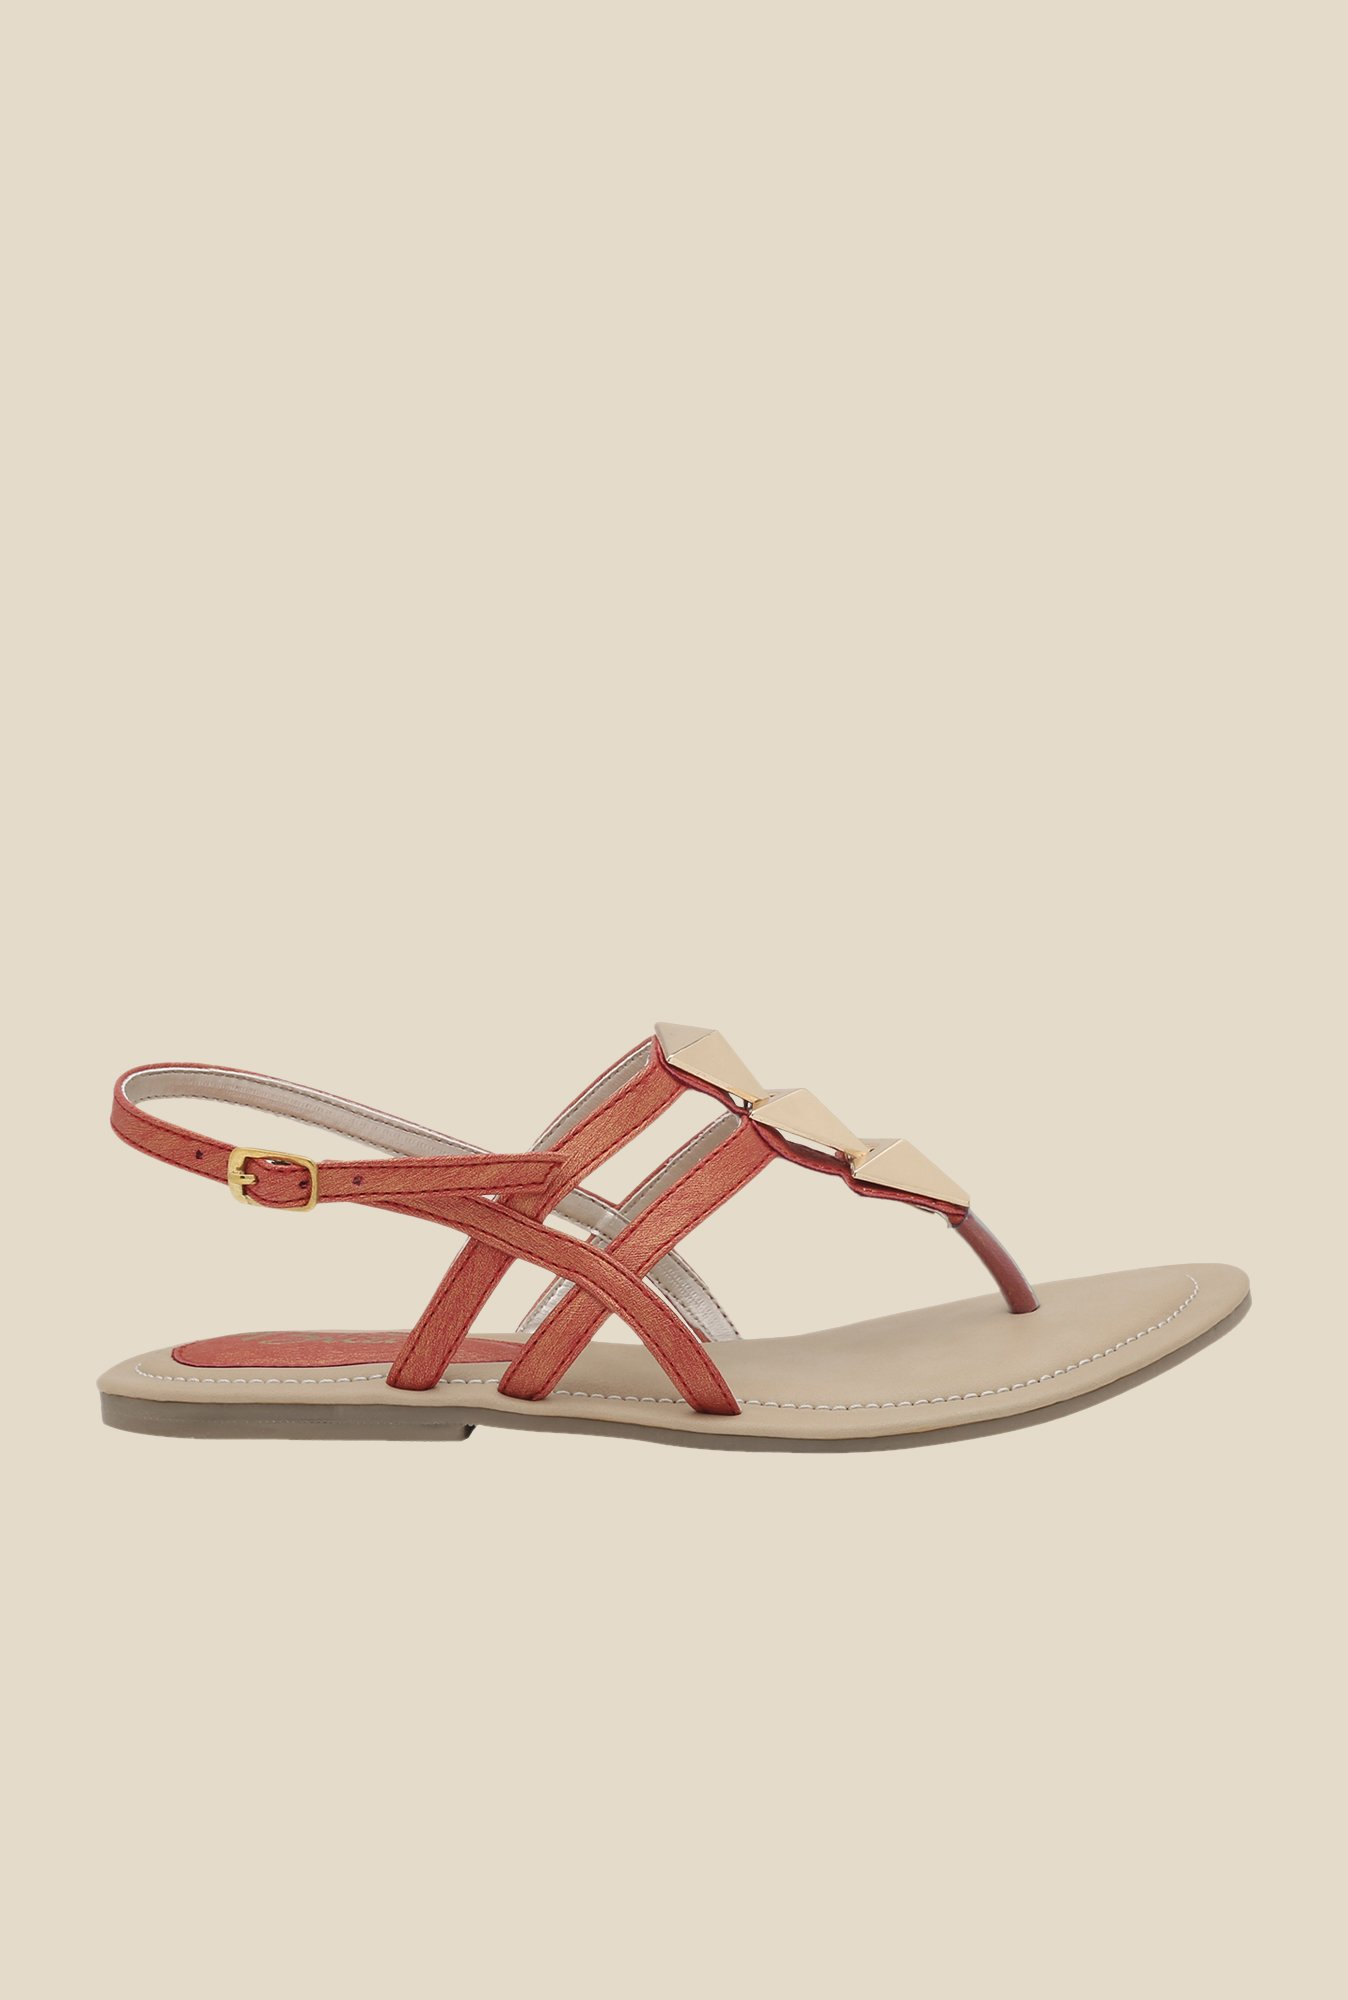 La Briza Red Back Strap Flat Sandals